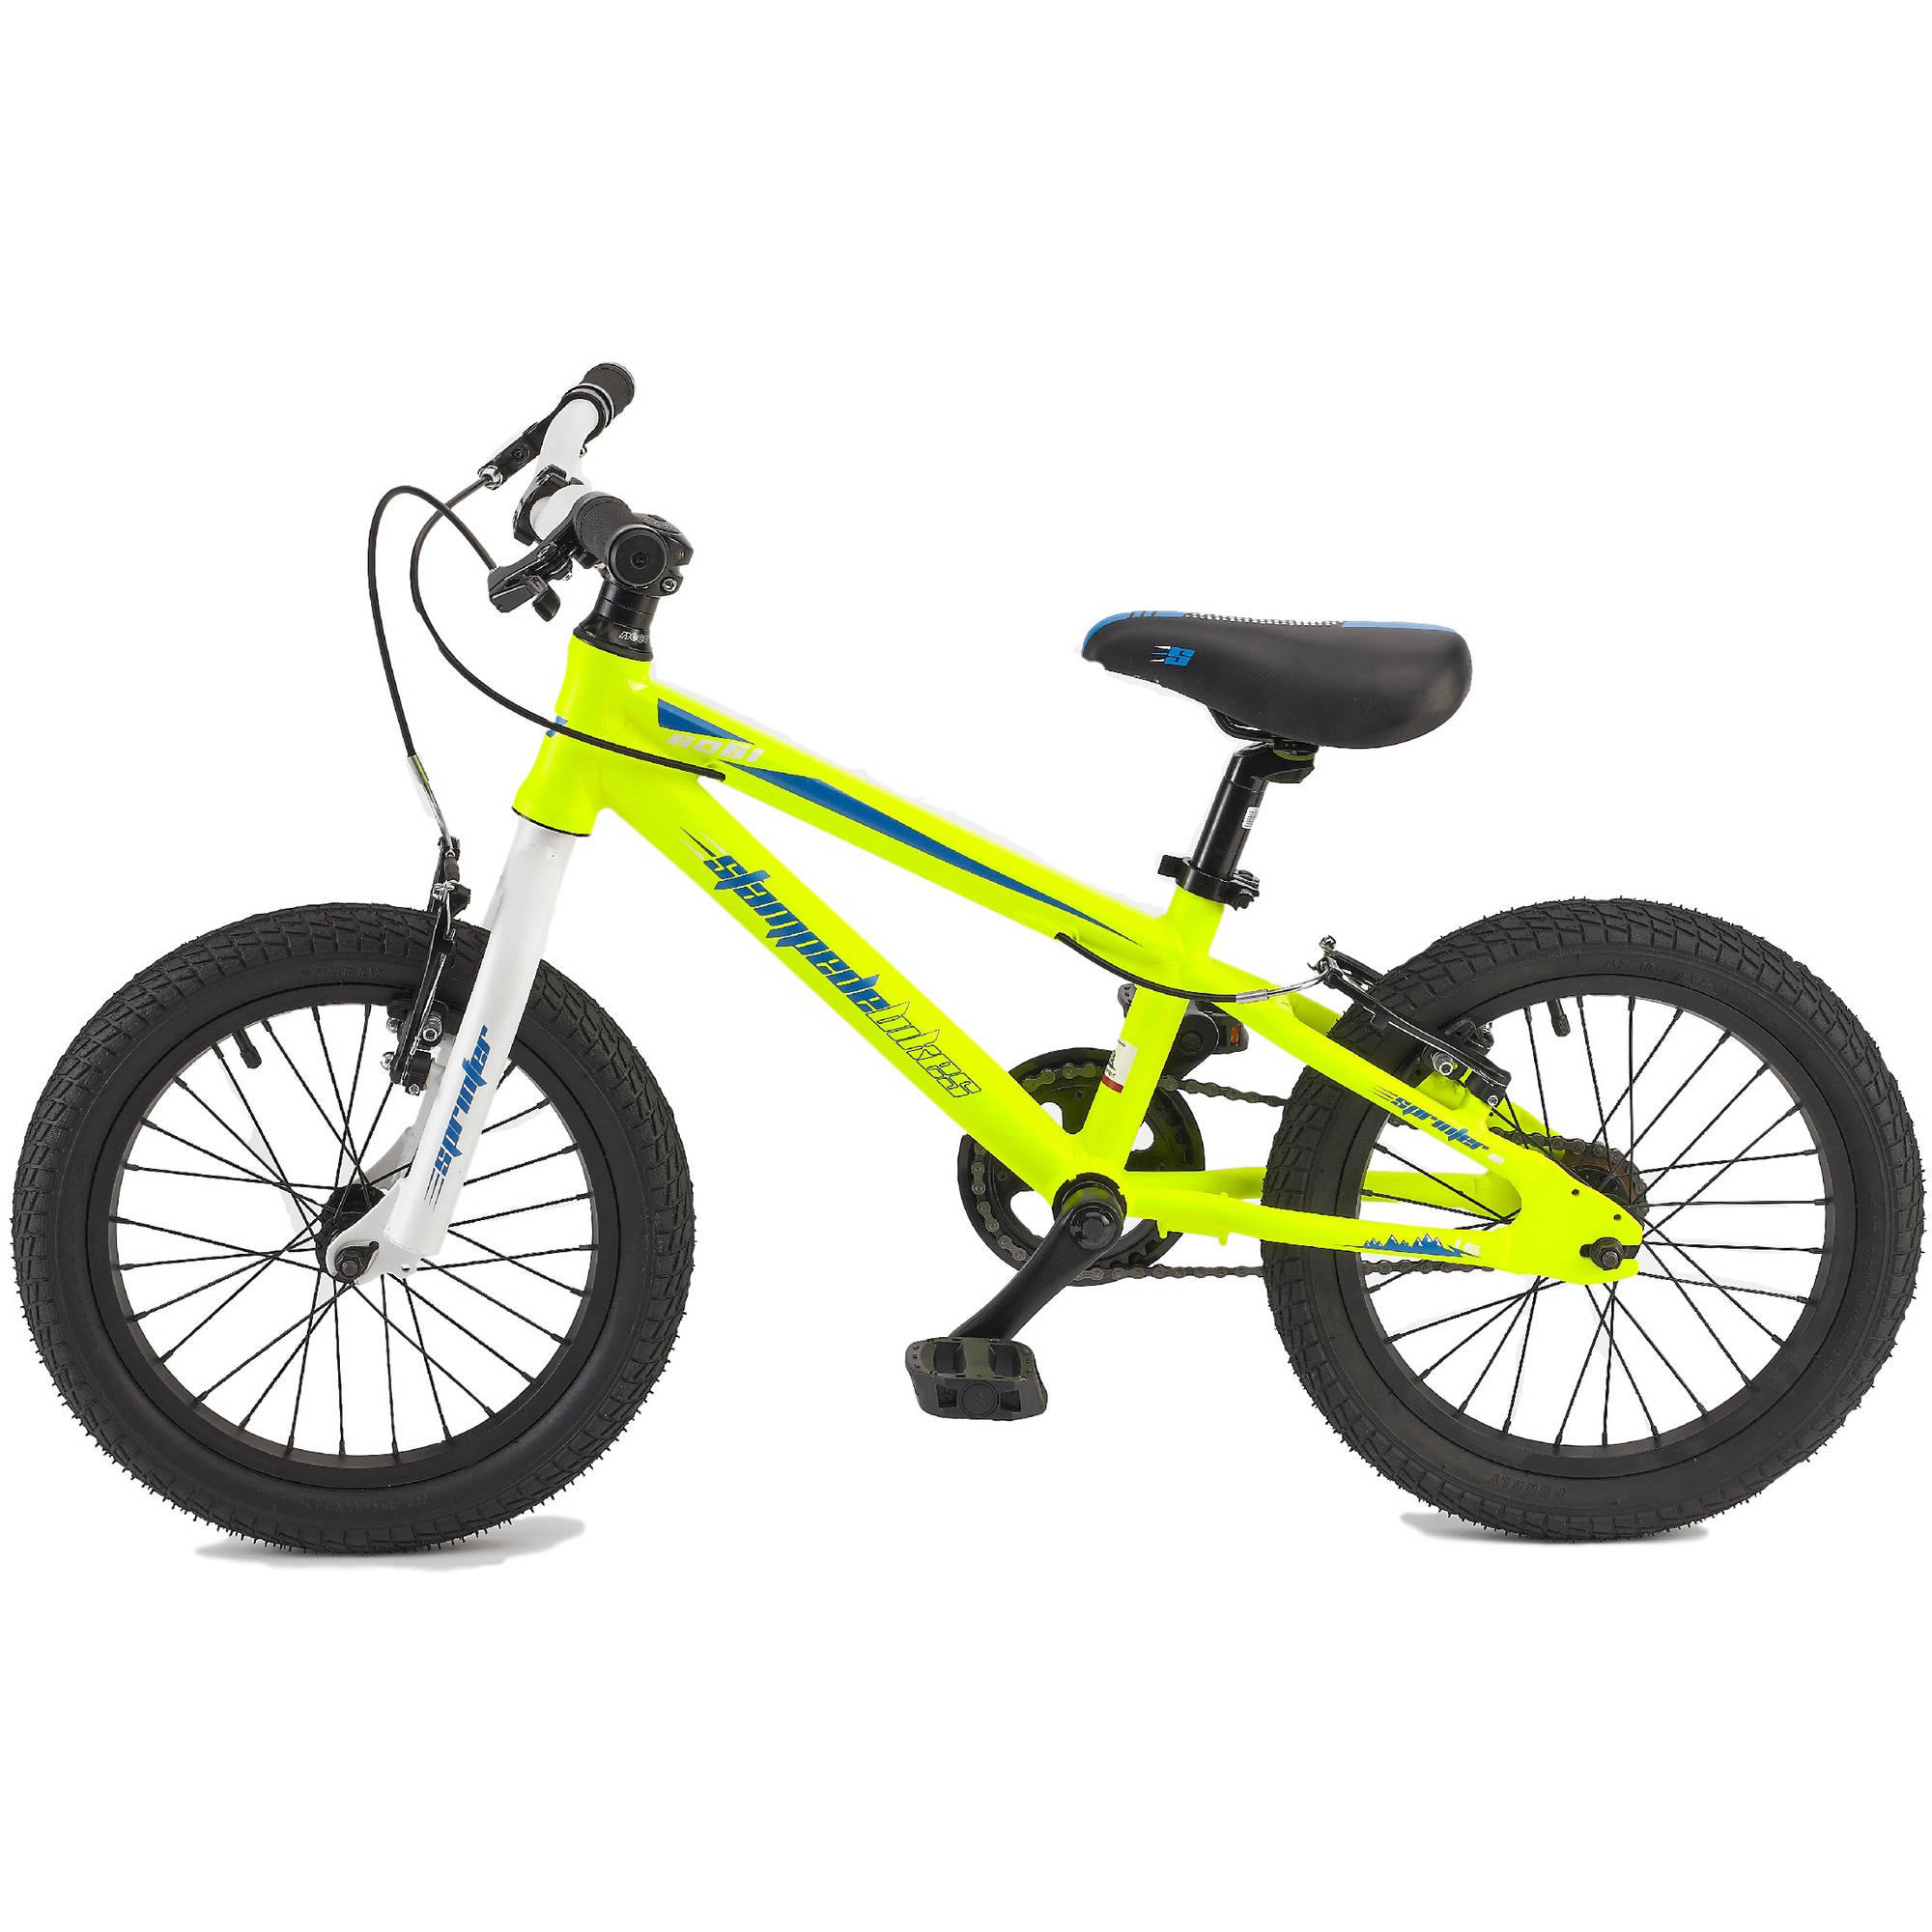 "16"" Stampede Bikes Sprinter Bike, Yellow"